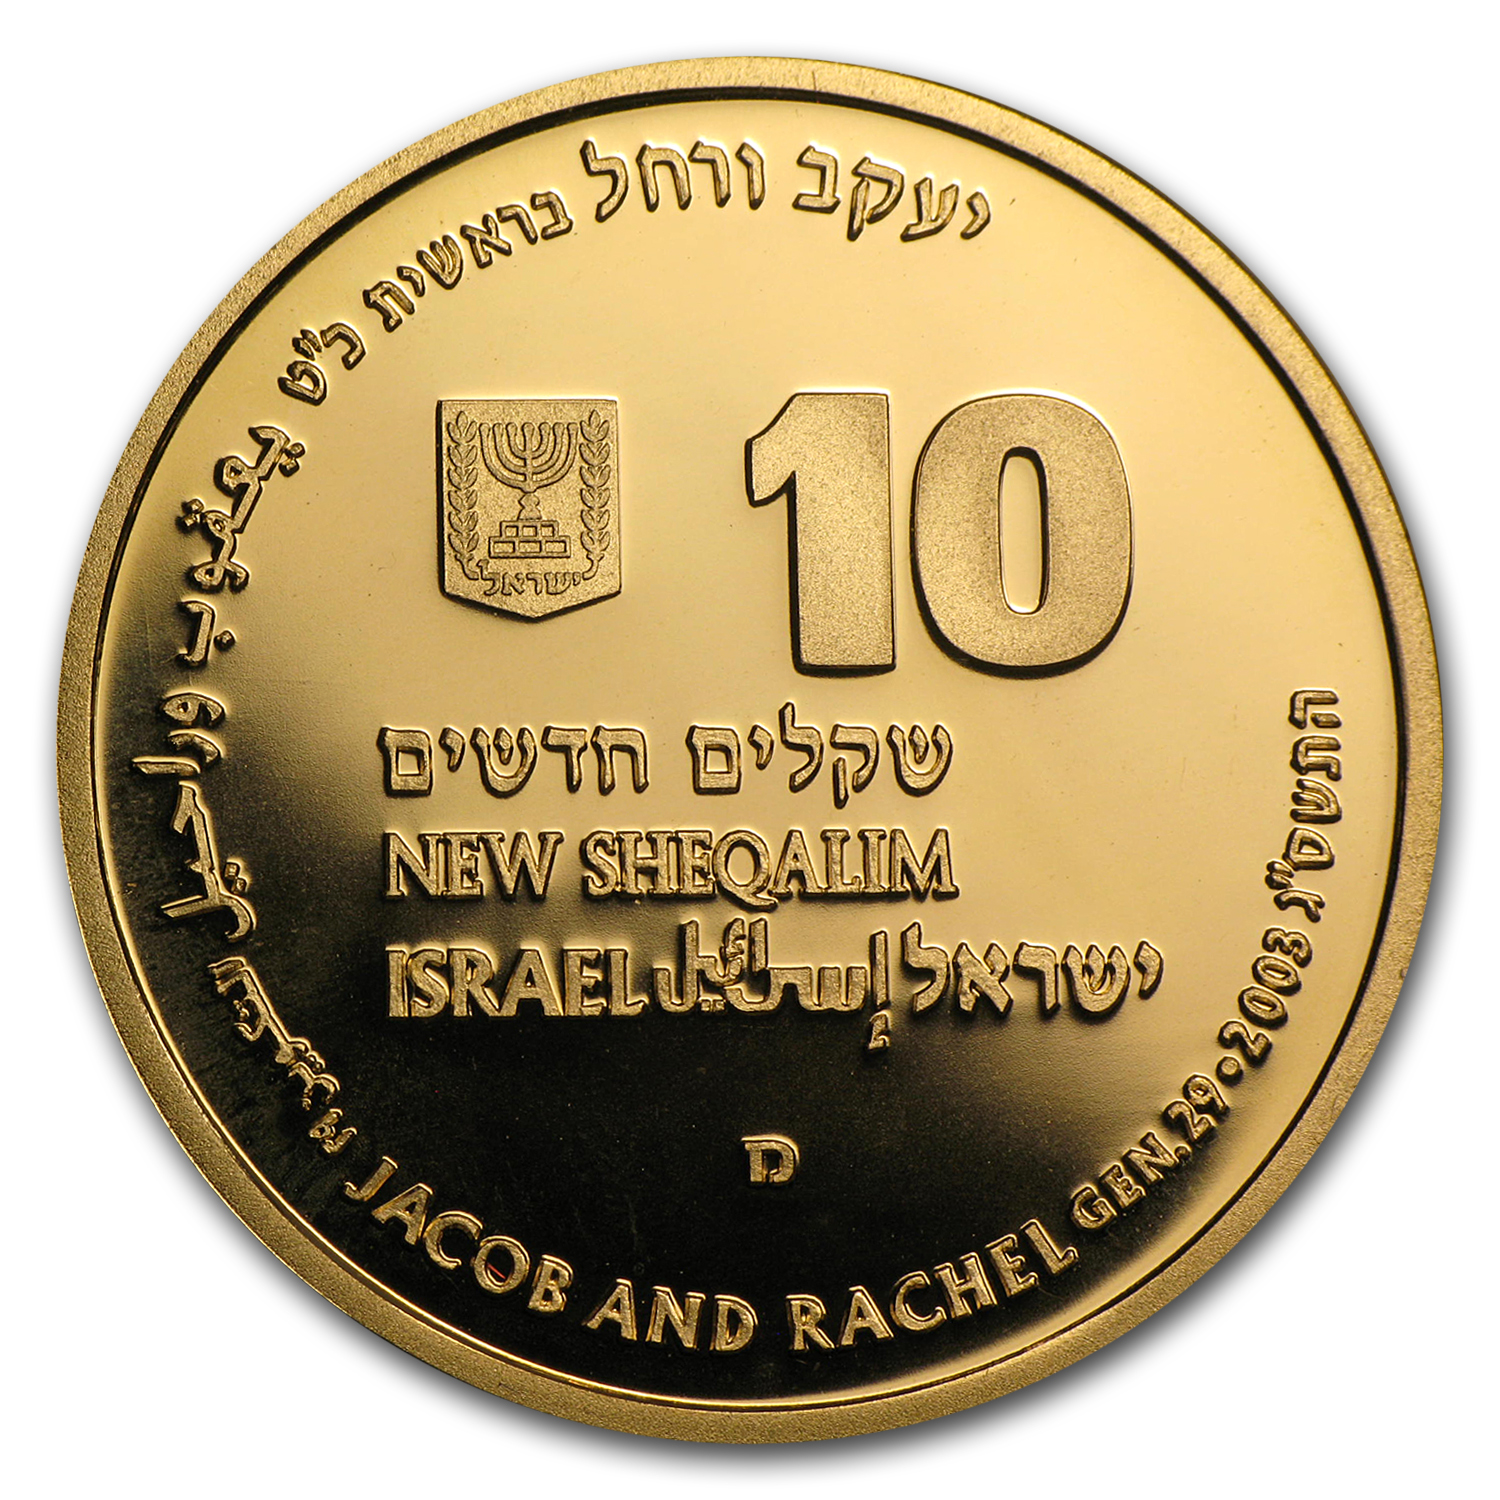 2003 Israel Jacob and Rachel 1/2 oz Proof Gold (w/ box & COA)